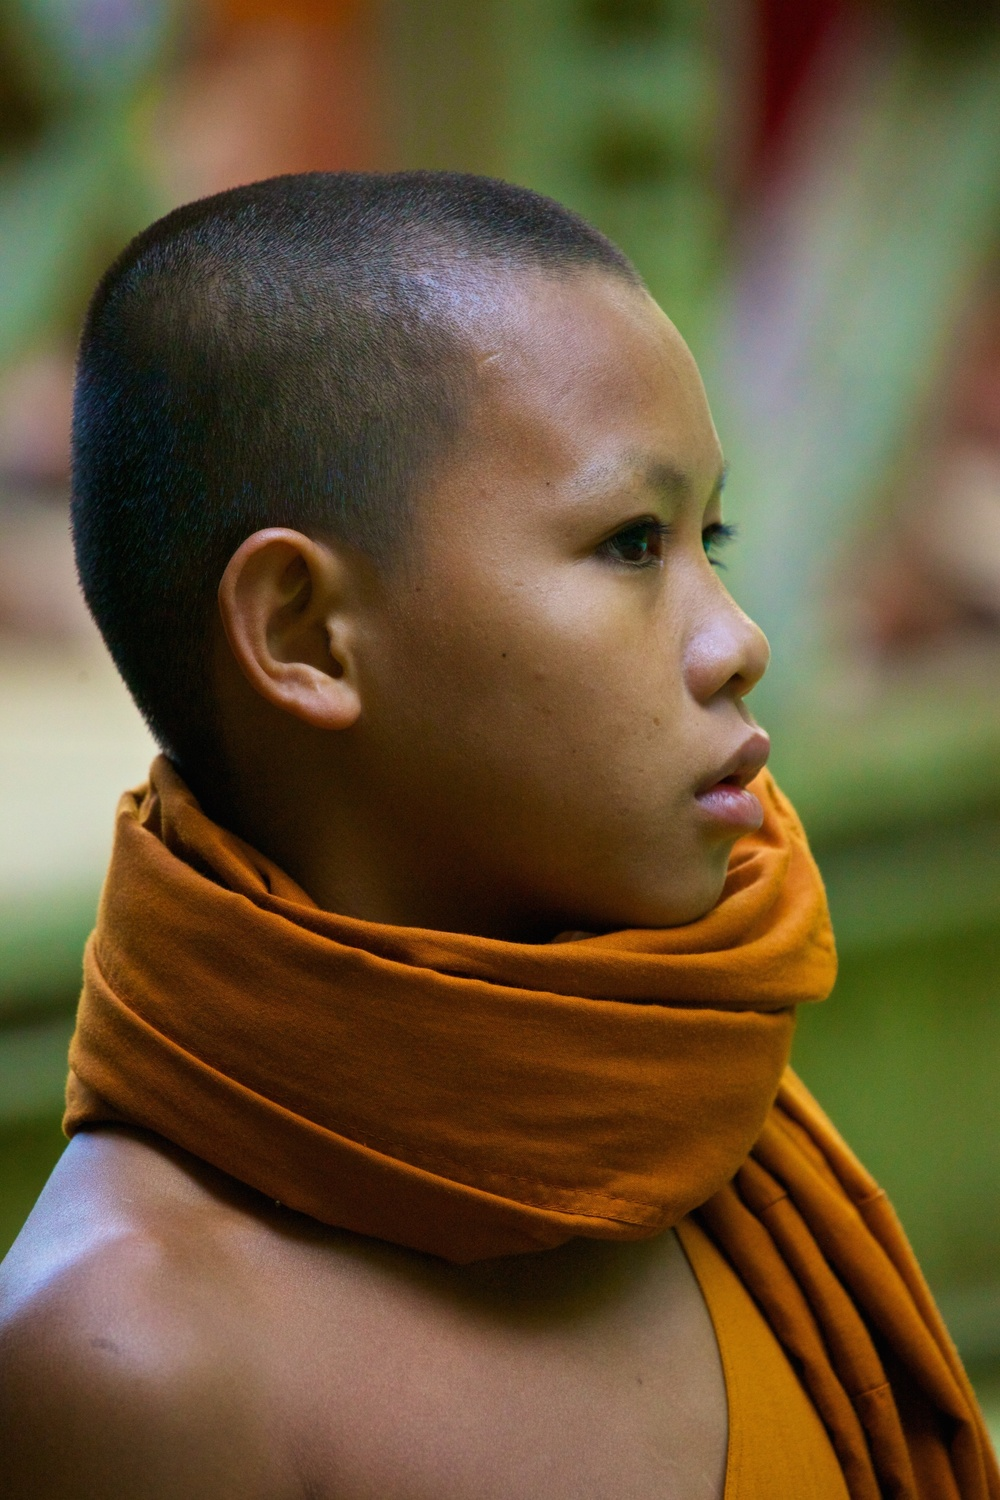 A buddhist monk novice.